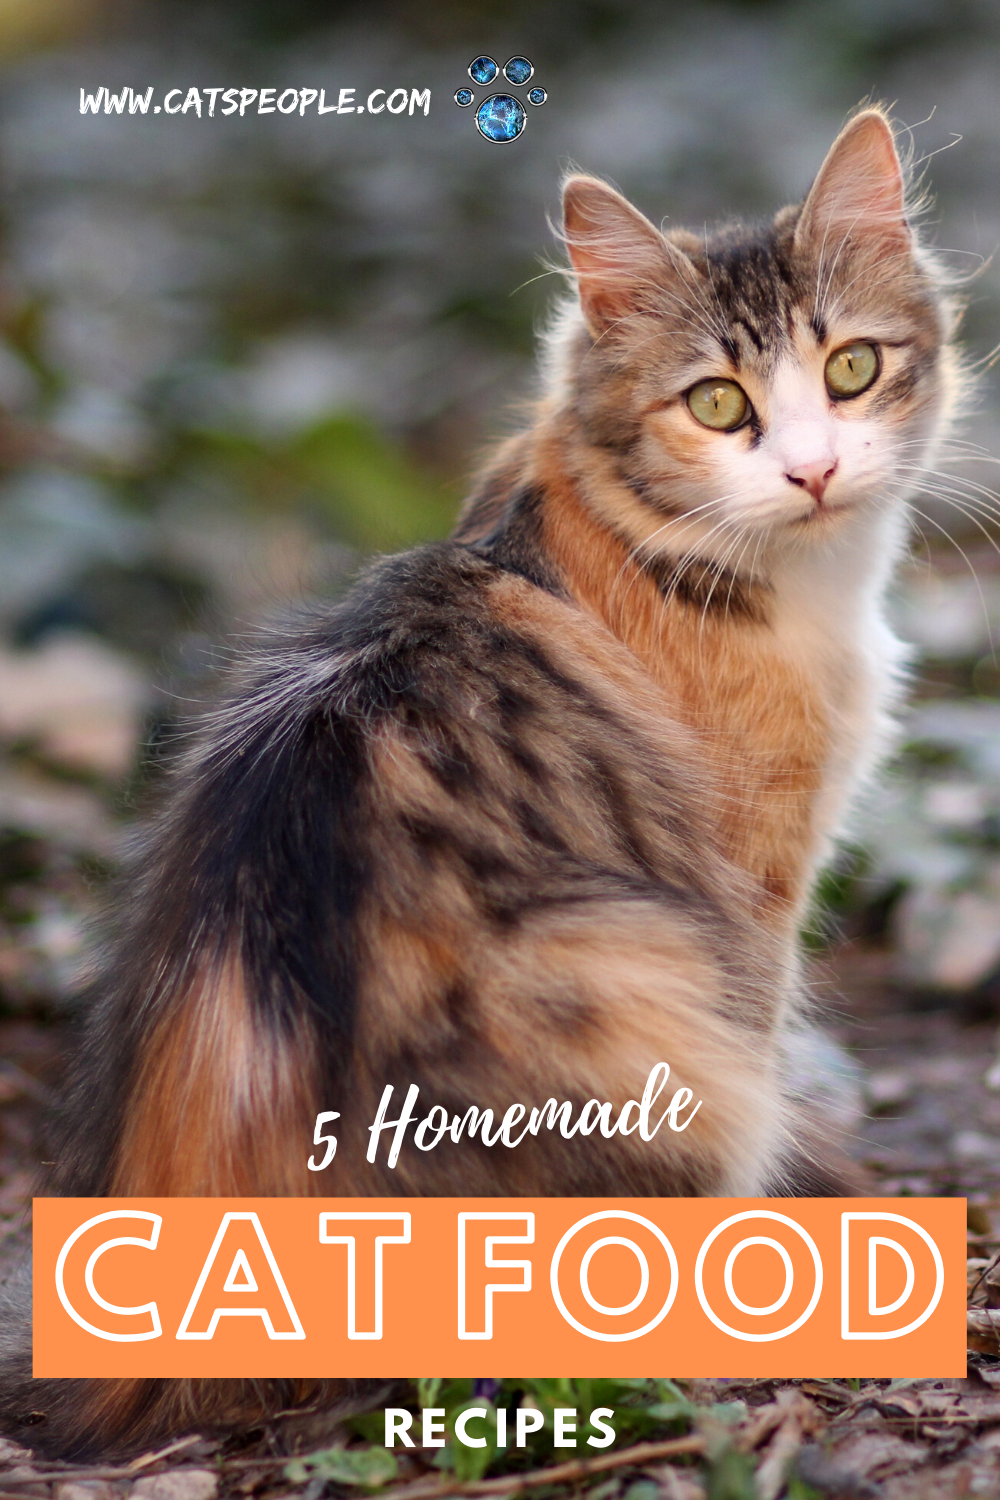 5 Homemade Cat Food Recipes Easy Cheap And Fun To Make In 2020 Cat Parenting Cats Homemade Cat